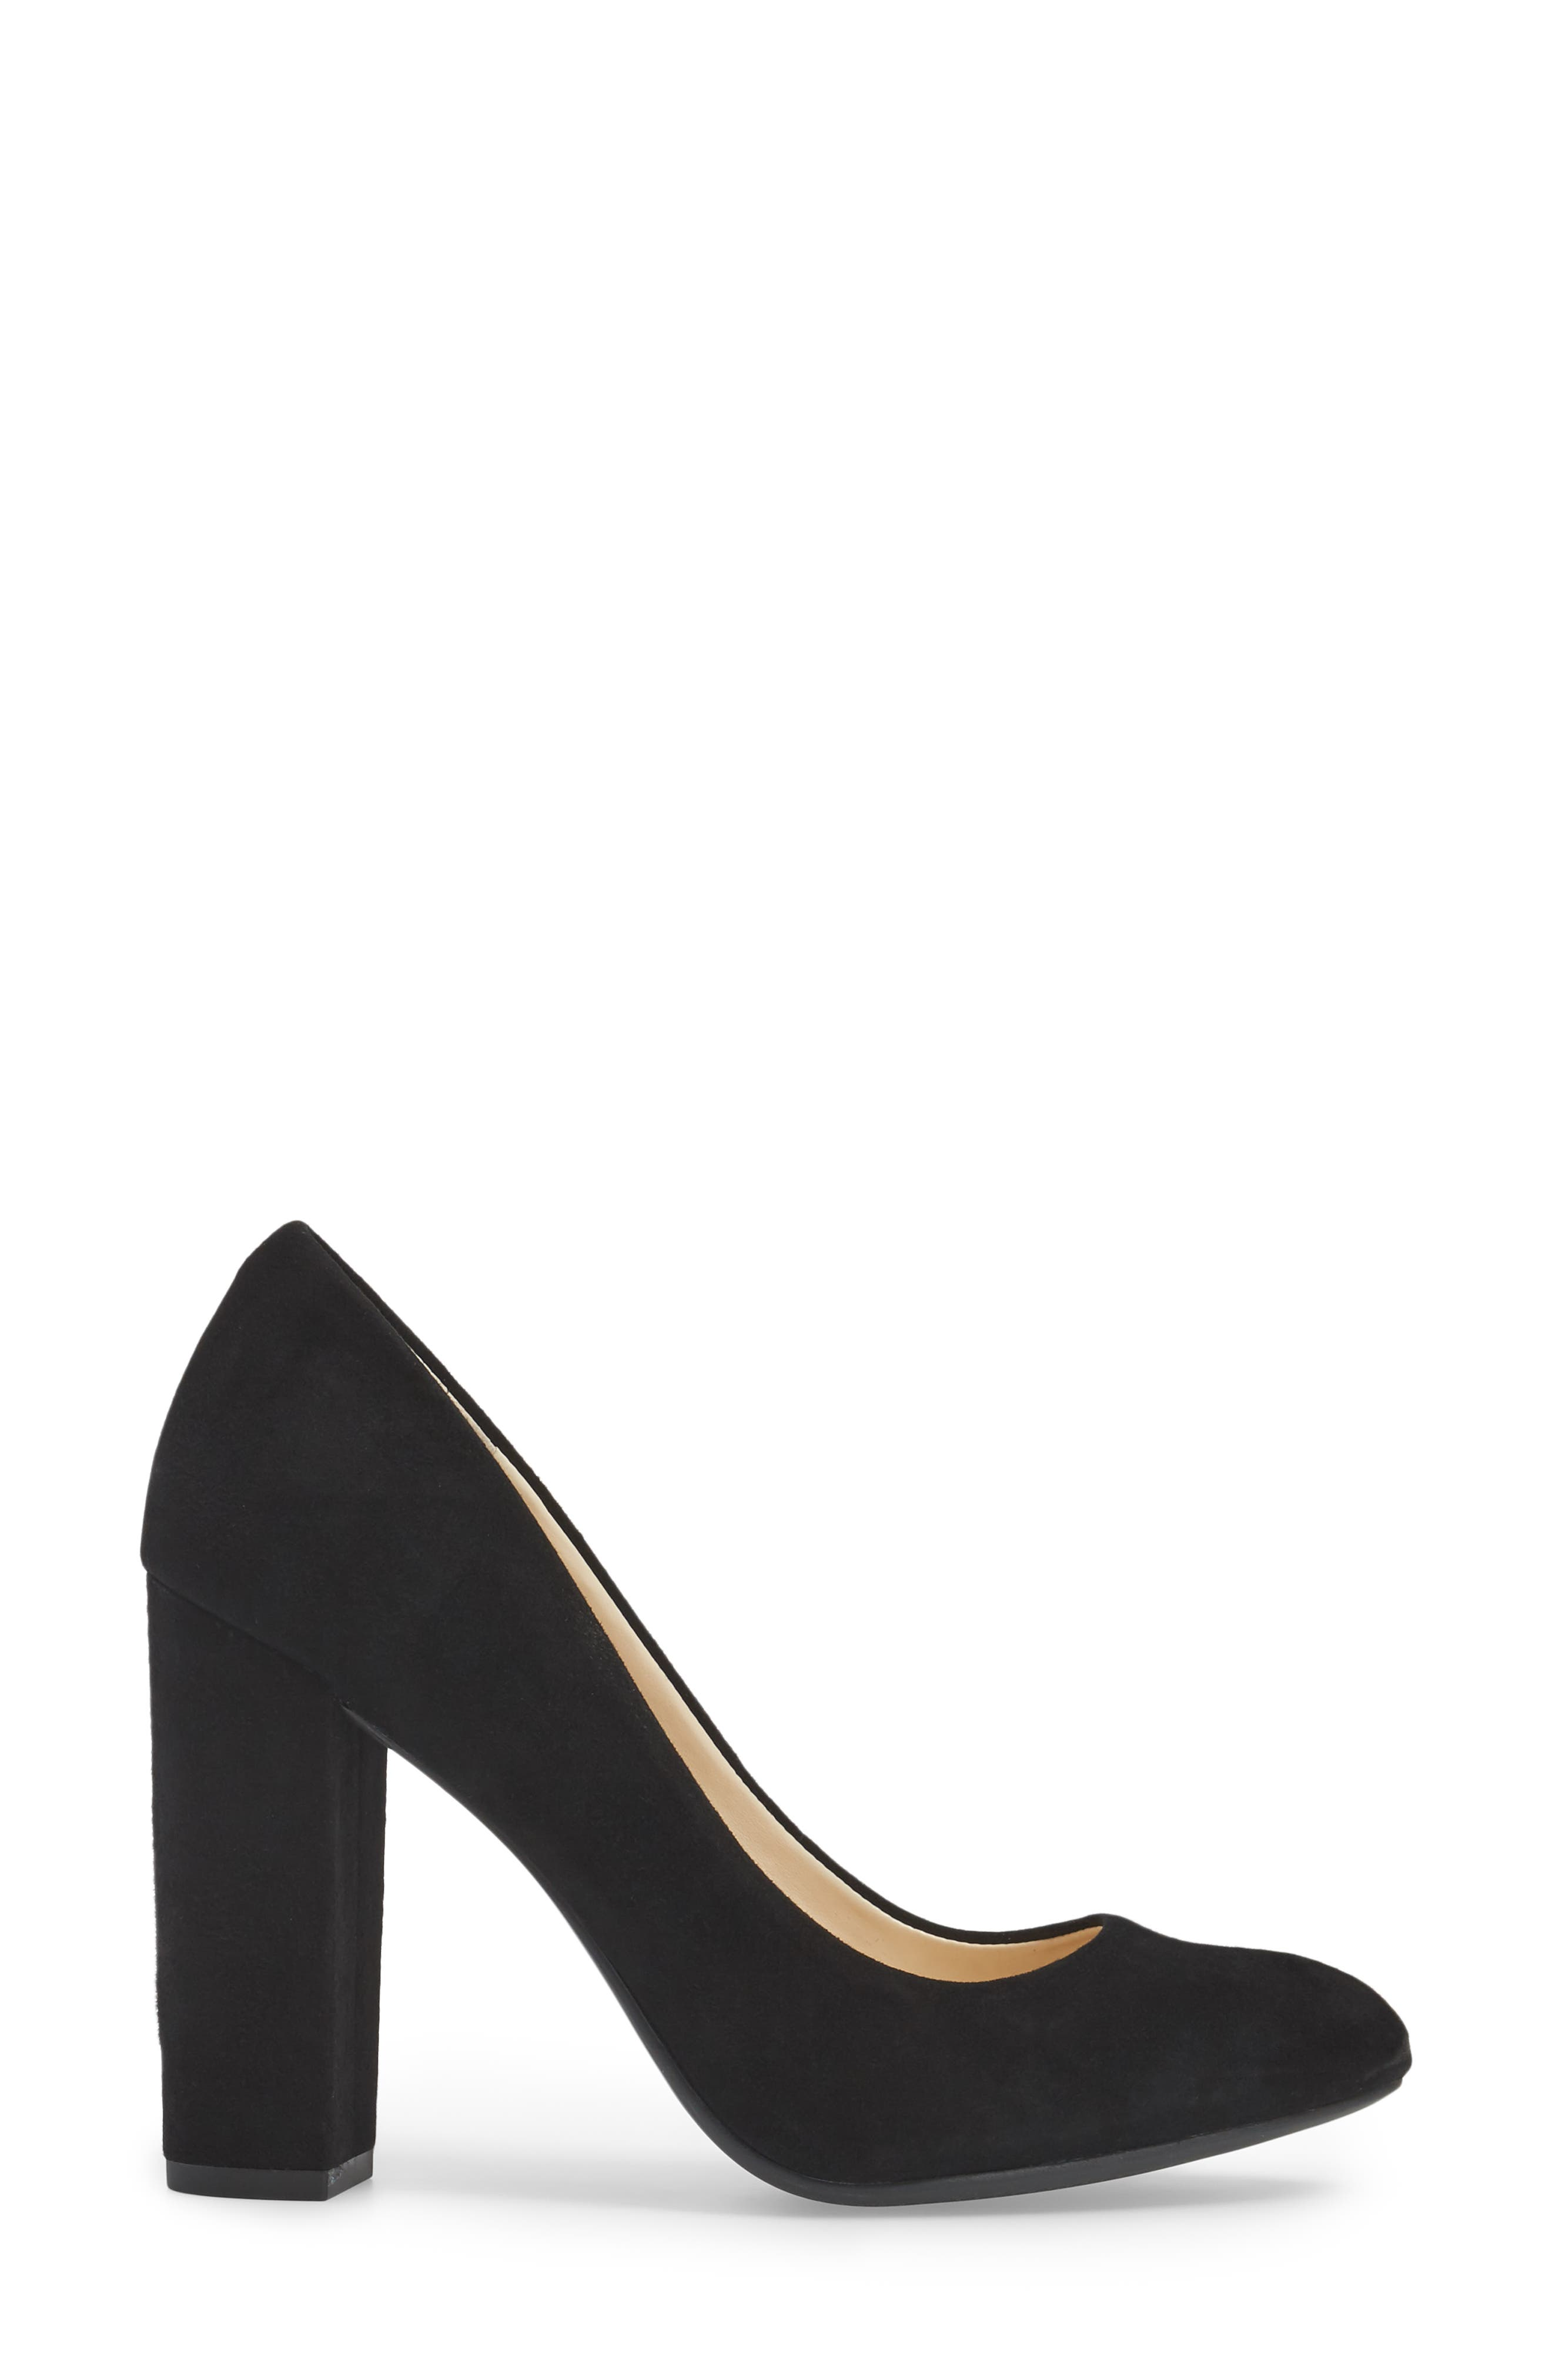 Alternate Image 3  - Jessica Simpson Belemo Pump (Women)